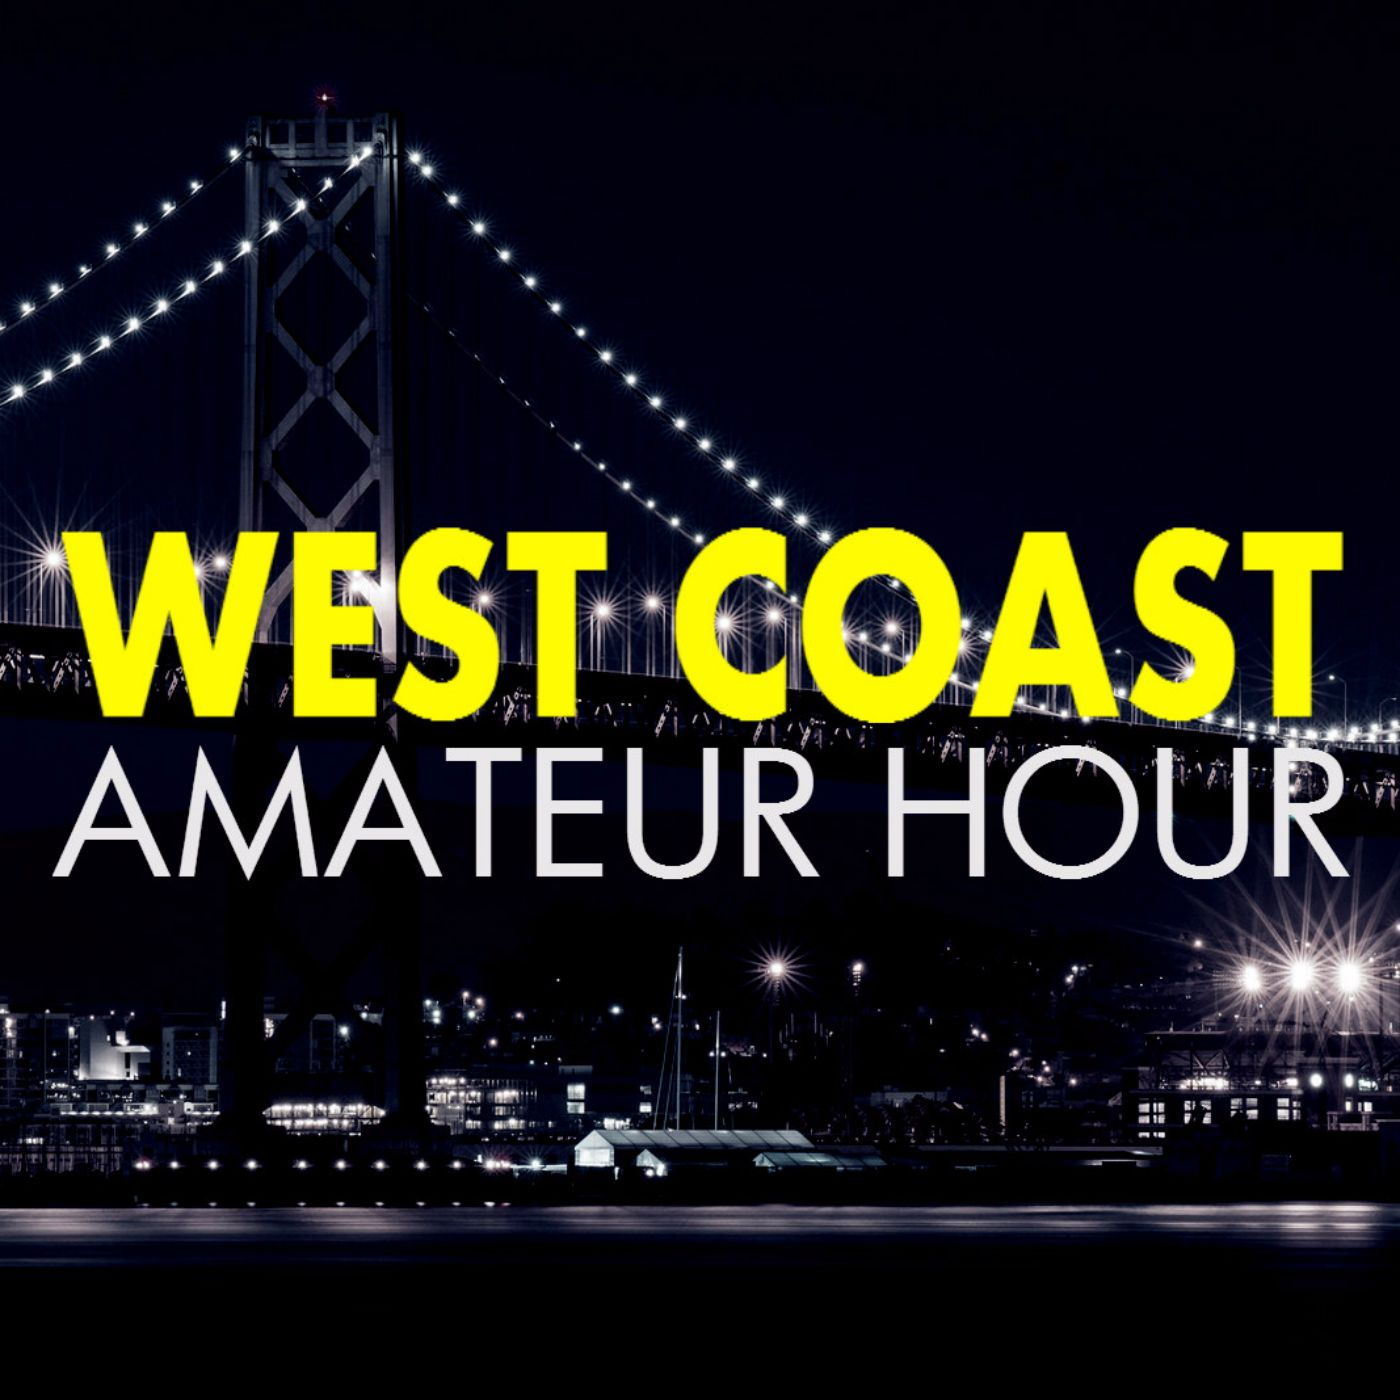 West Coast Amateur Hour